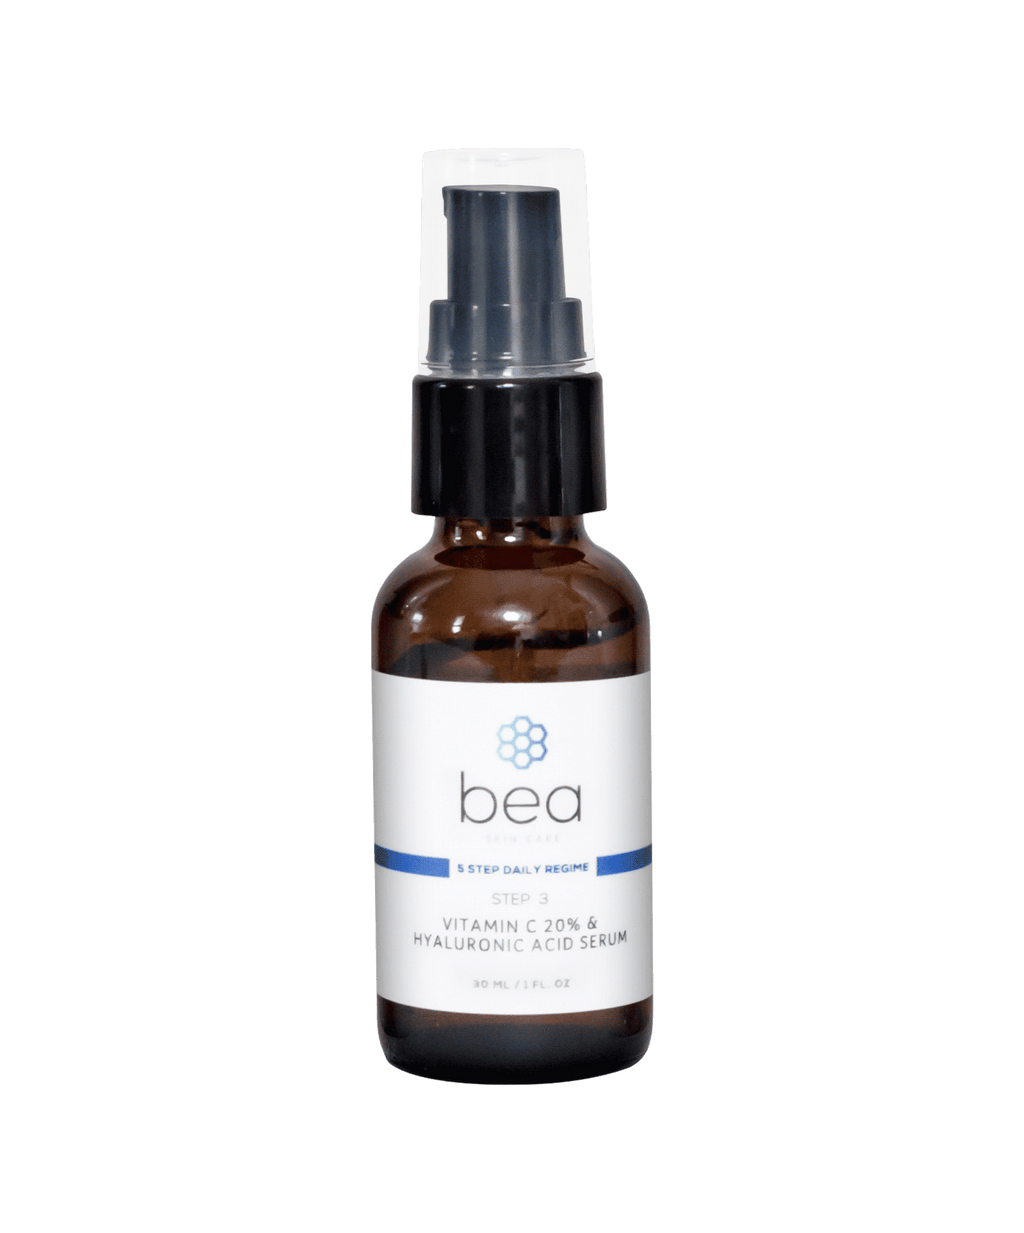 Step 3: Vitamin C 20% & Hyaluronic Acid Serum - 30 ml Face Serum bea Skin Care